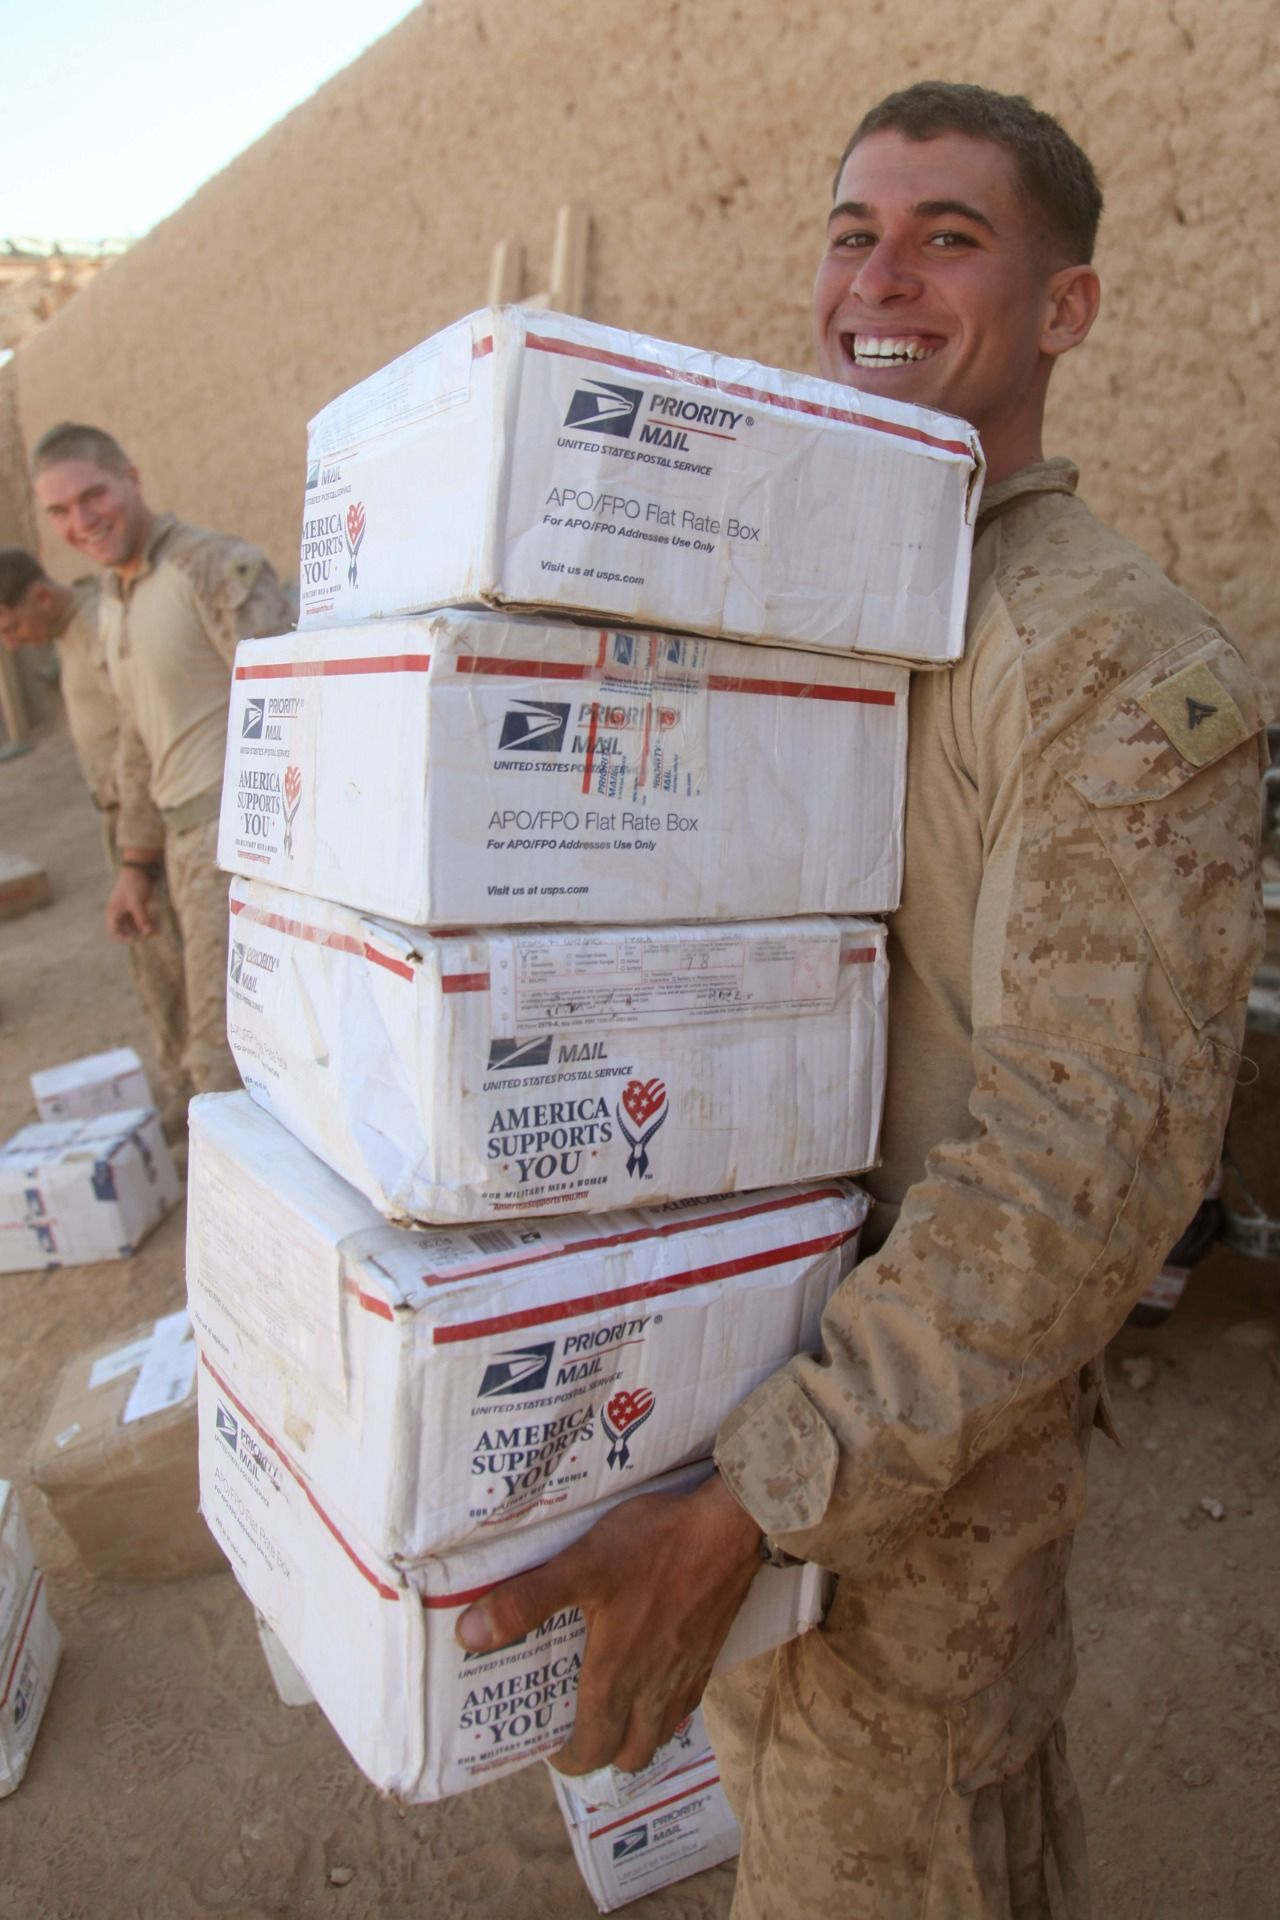 Look at that smile!  Please send care packages to our troops overseas. One way to do that is through AnySoldier.com